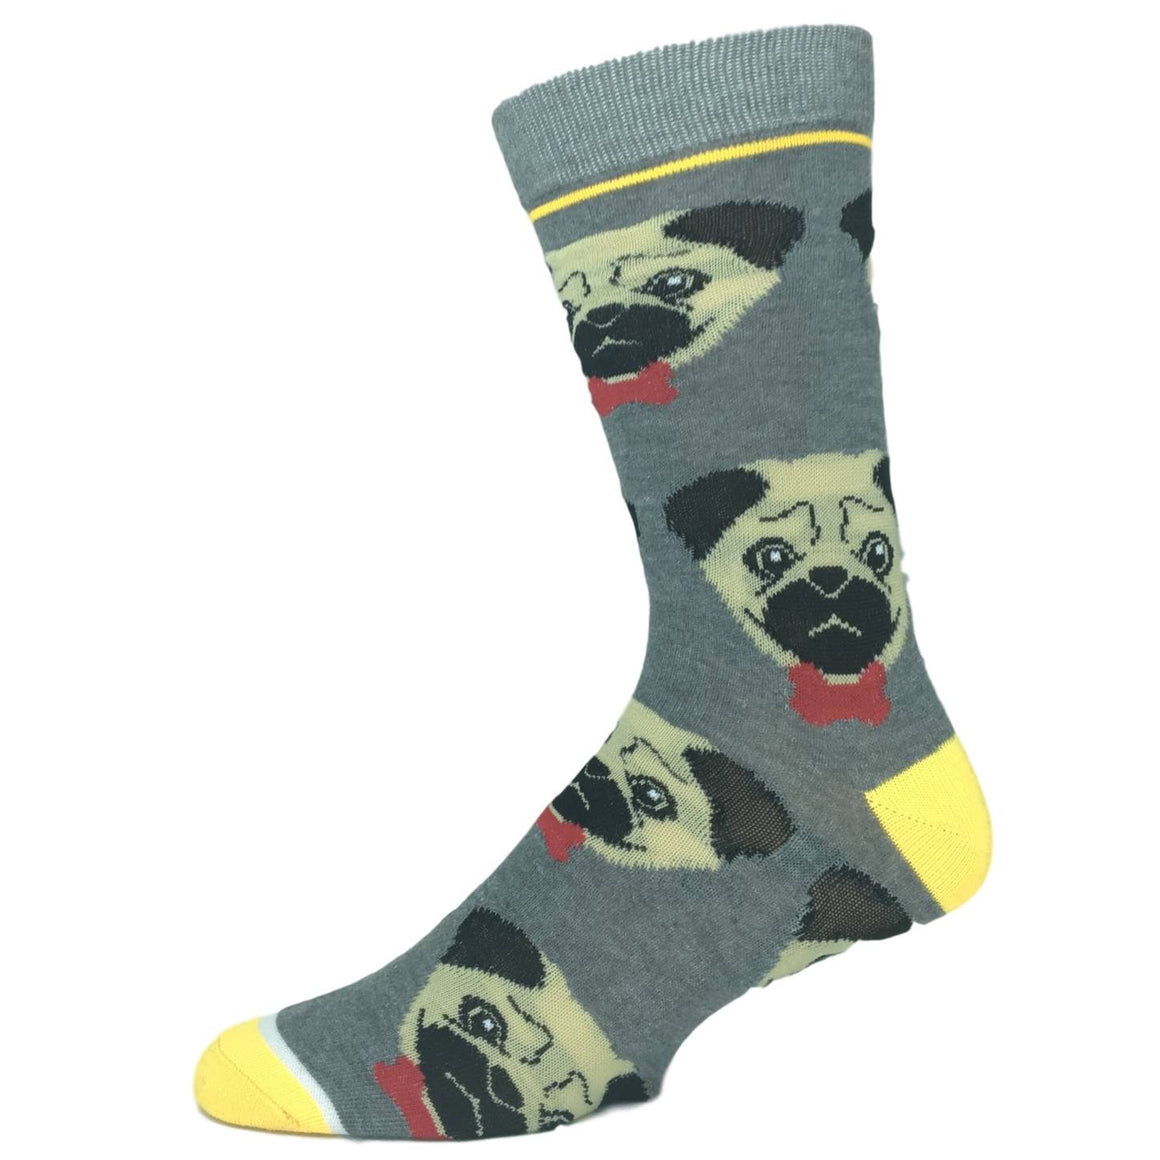 Bow Tie Pug Socks - The Sock Spot